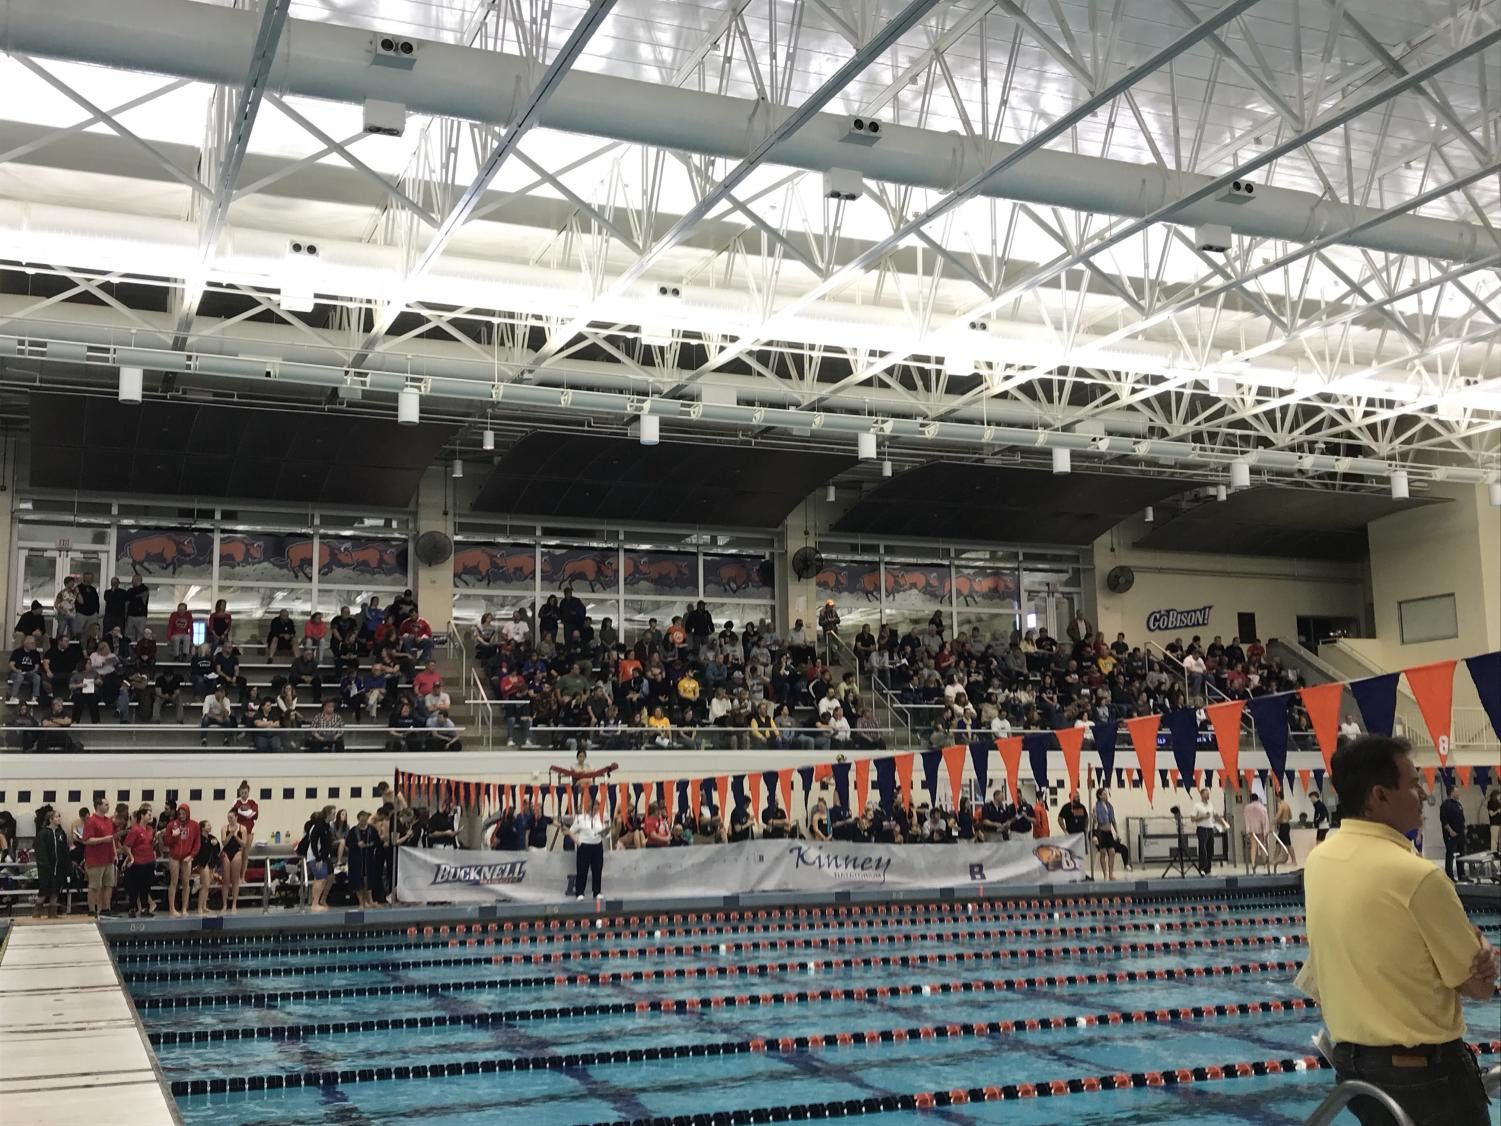 Family members, friends, and fans watch the meet from the stands.